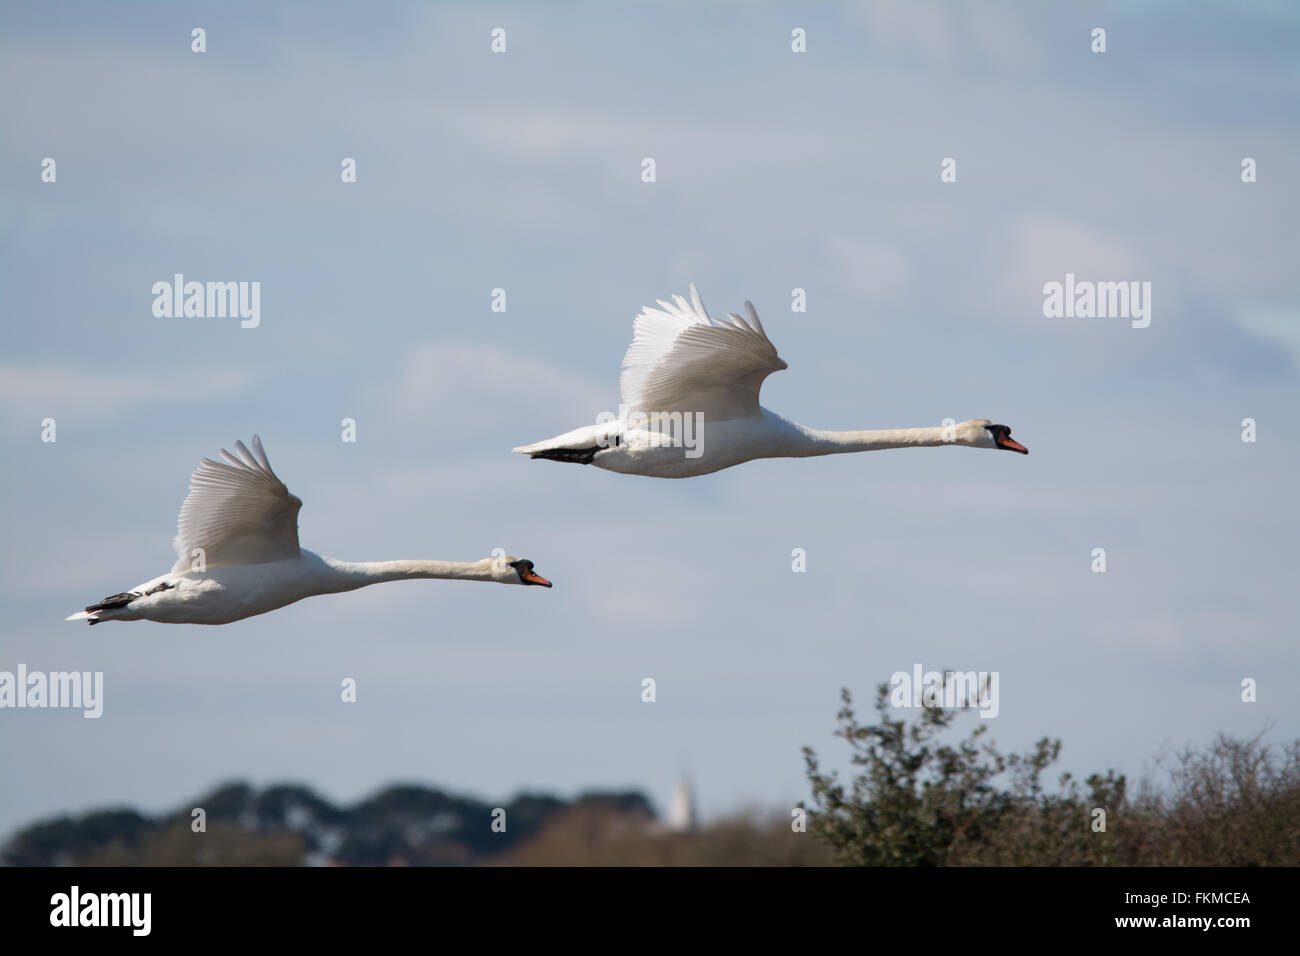 Two mute swans (Cygnus olor) in flight at Lymington - Keyhaven Nature Reserve in Hampshire, England - Stock Image